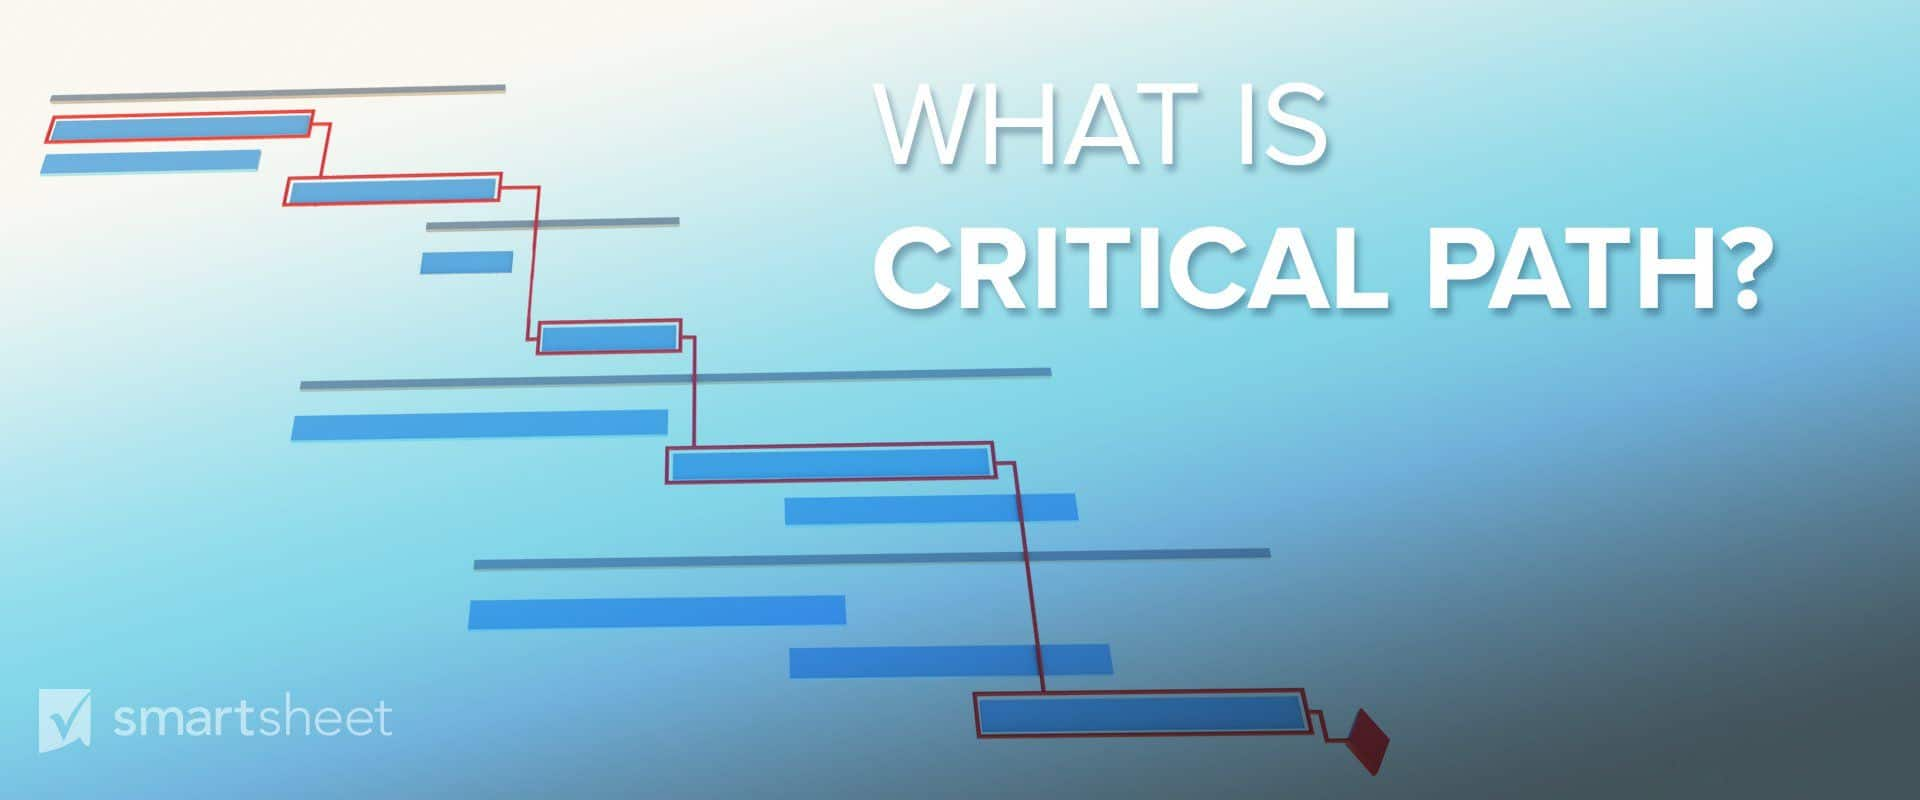 What Is Critical Path And How Does It Help Me